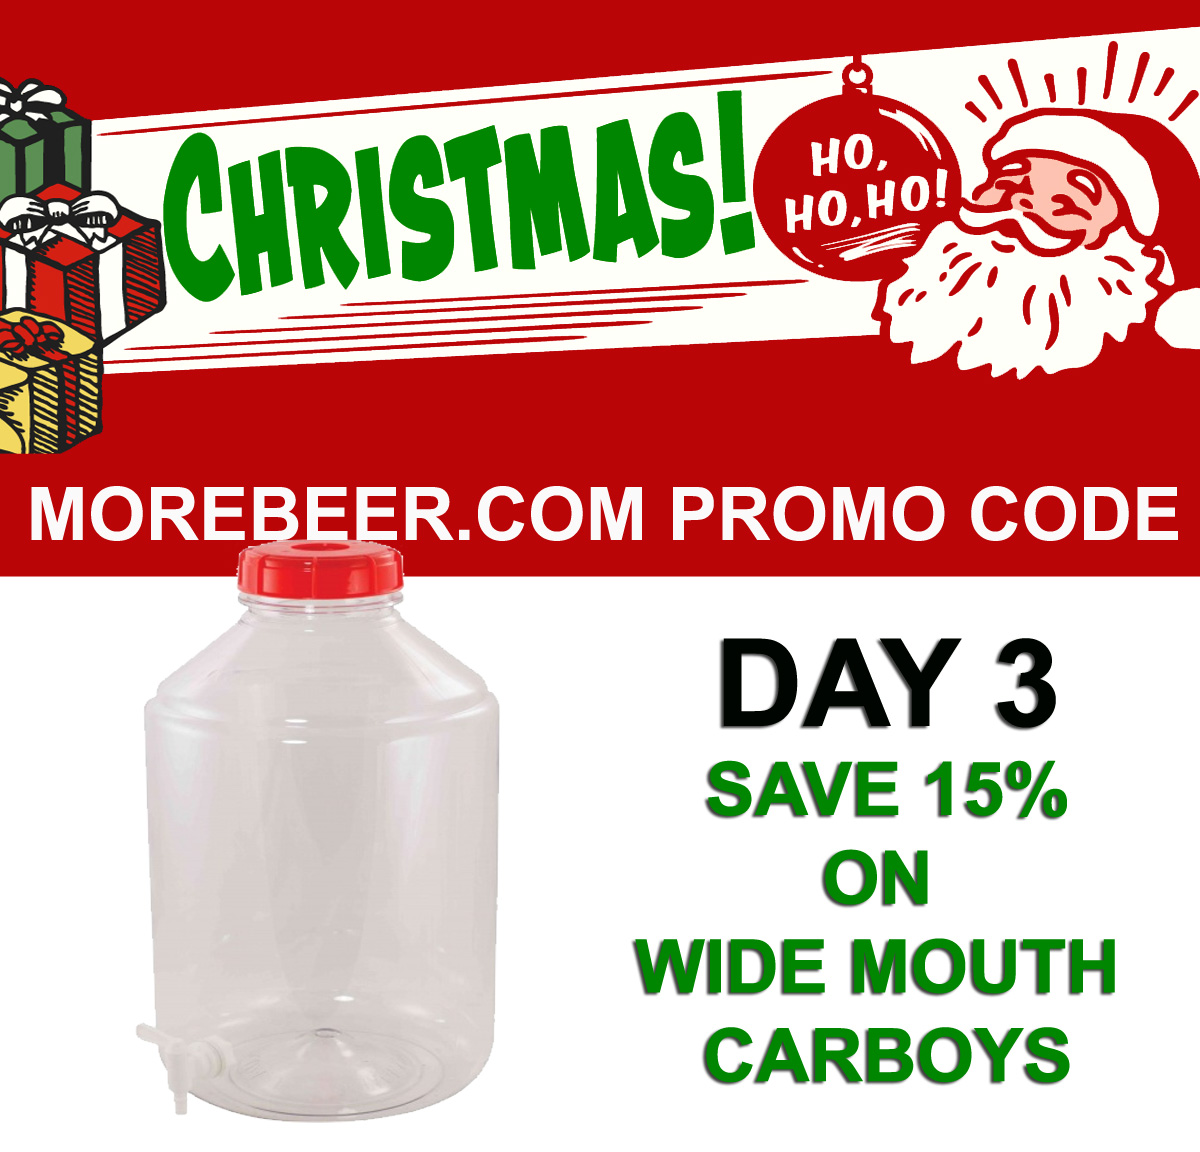 Save 15% On FerMonster Wide Mouth Home Brewing Carboys Coupon Code